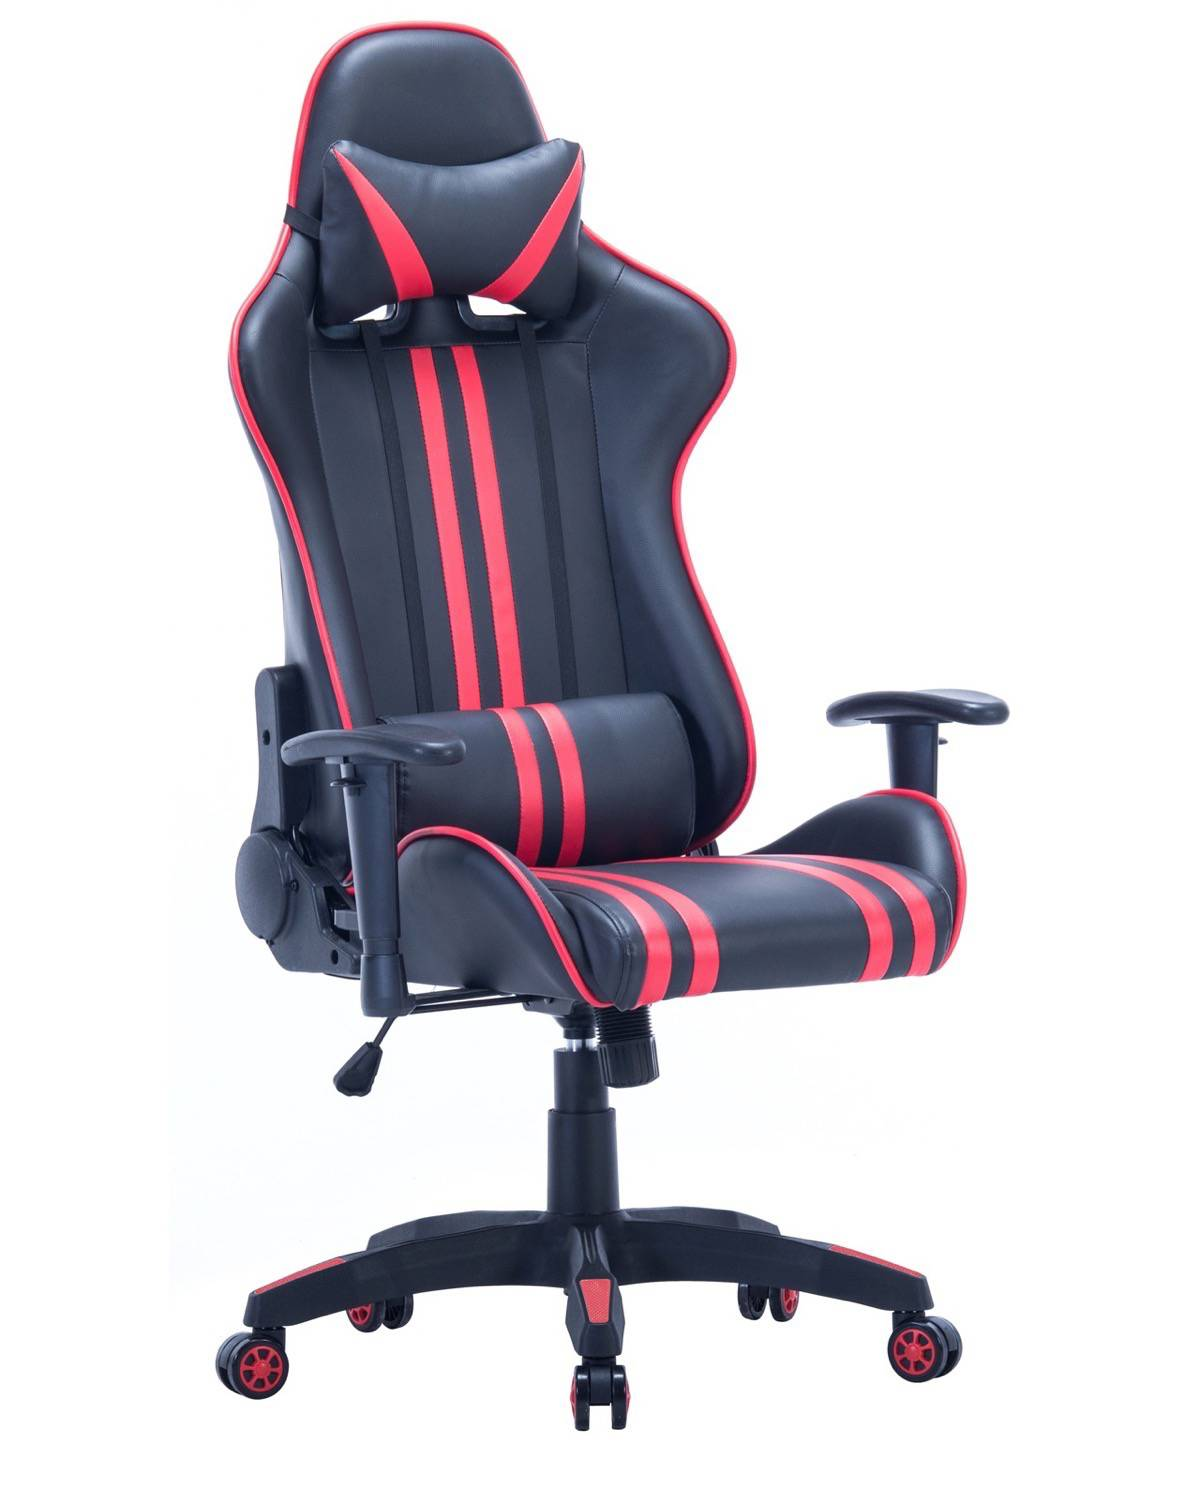 fauteuil gamer les meilleurs chaises et si ges racing. Black Bedroom Furniture Sets. Home Design Ideas